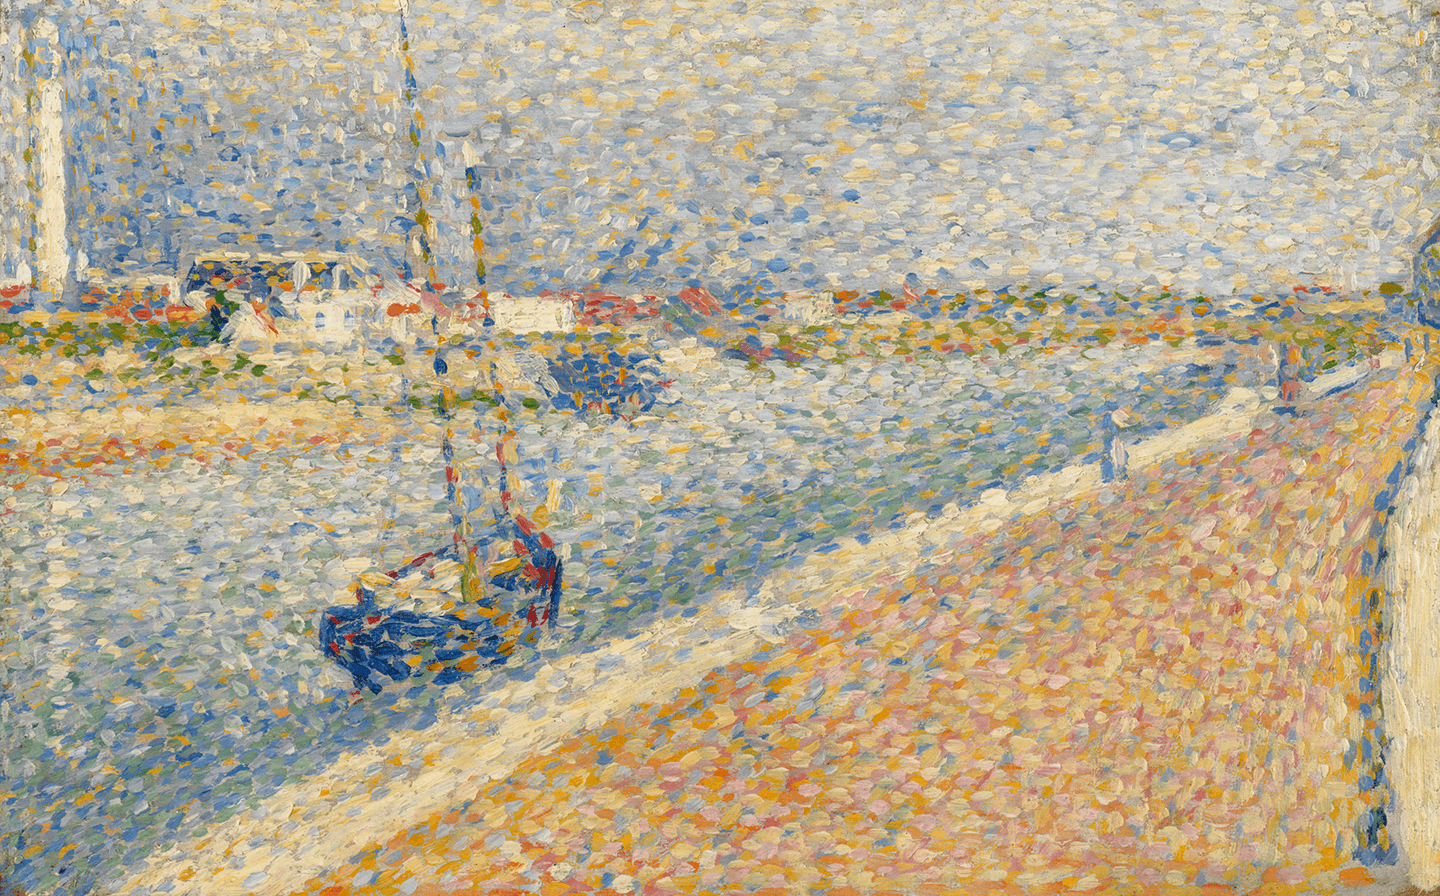 A coastal harbor scene. A dock on the right with a blue boat and the waterway on the left. The background is filled with low buildings and a lighthouse.